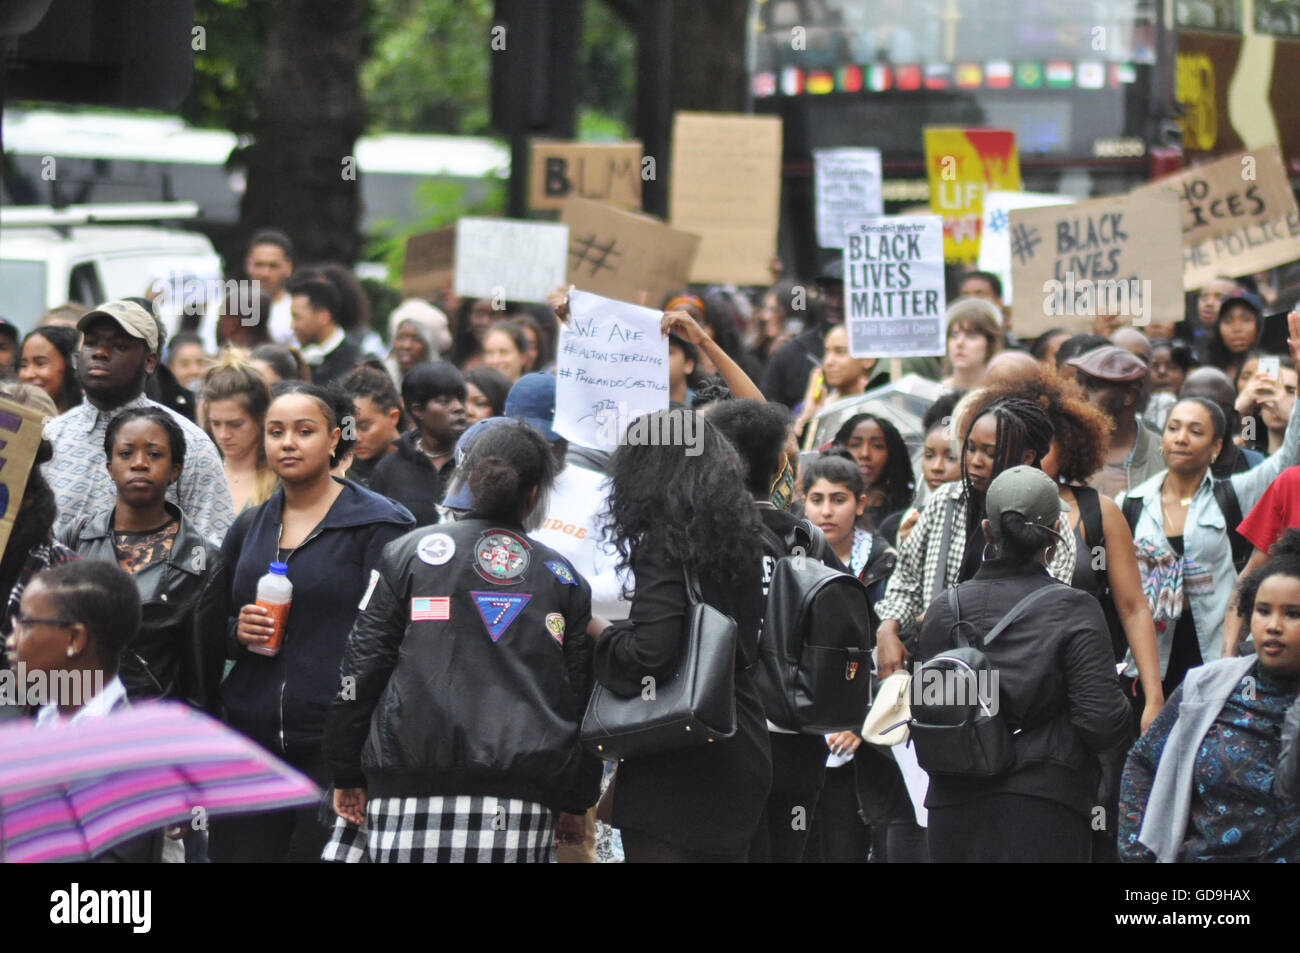 Scenes for Oxford Street at th Black Lives Matter U.K protest as thousands of people gathered and marched in solidarity. - Stock Image